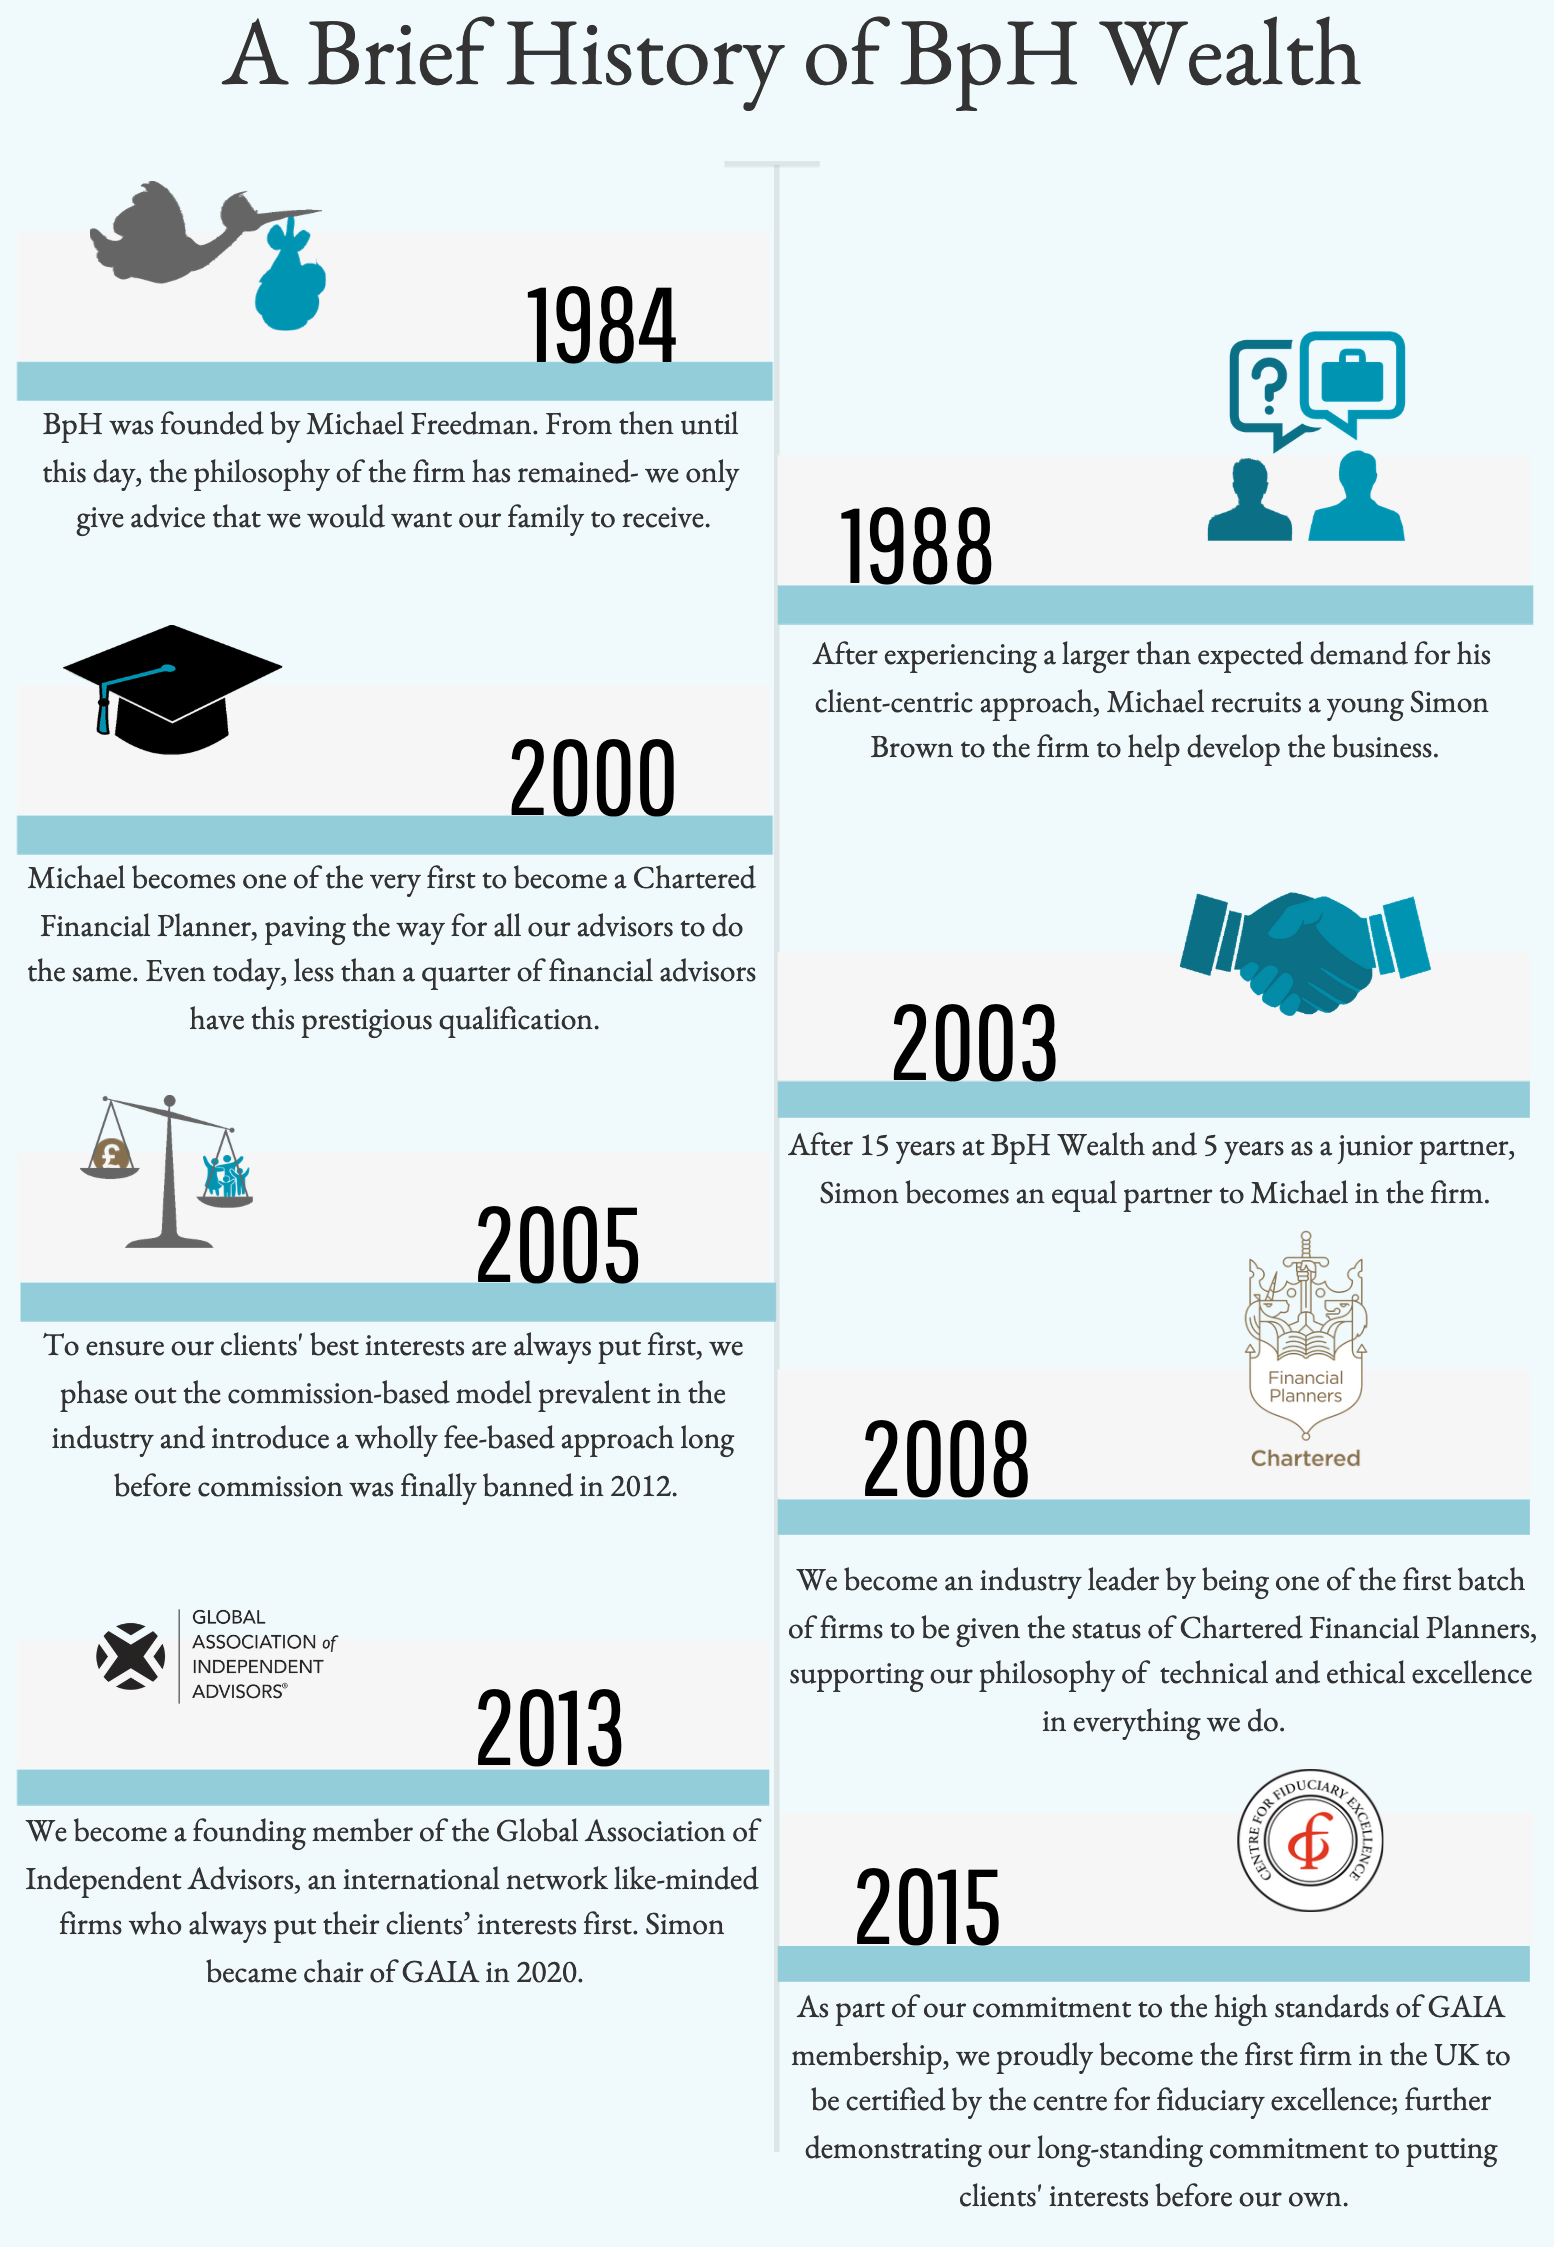 A short history of BpH Wealth in timeline form